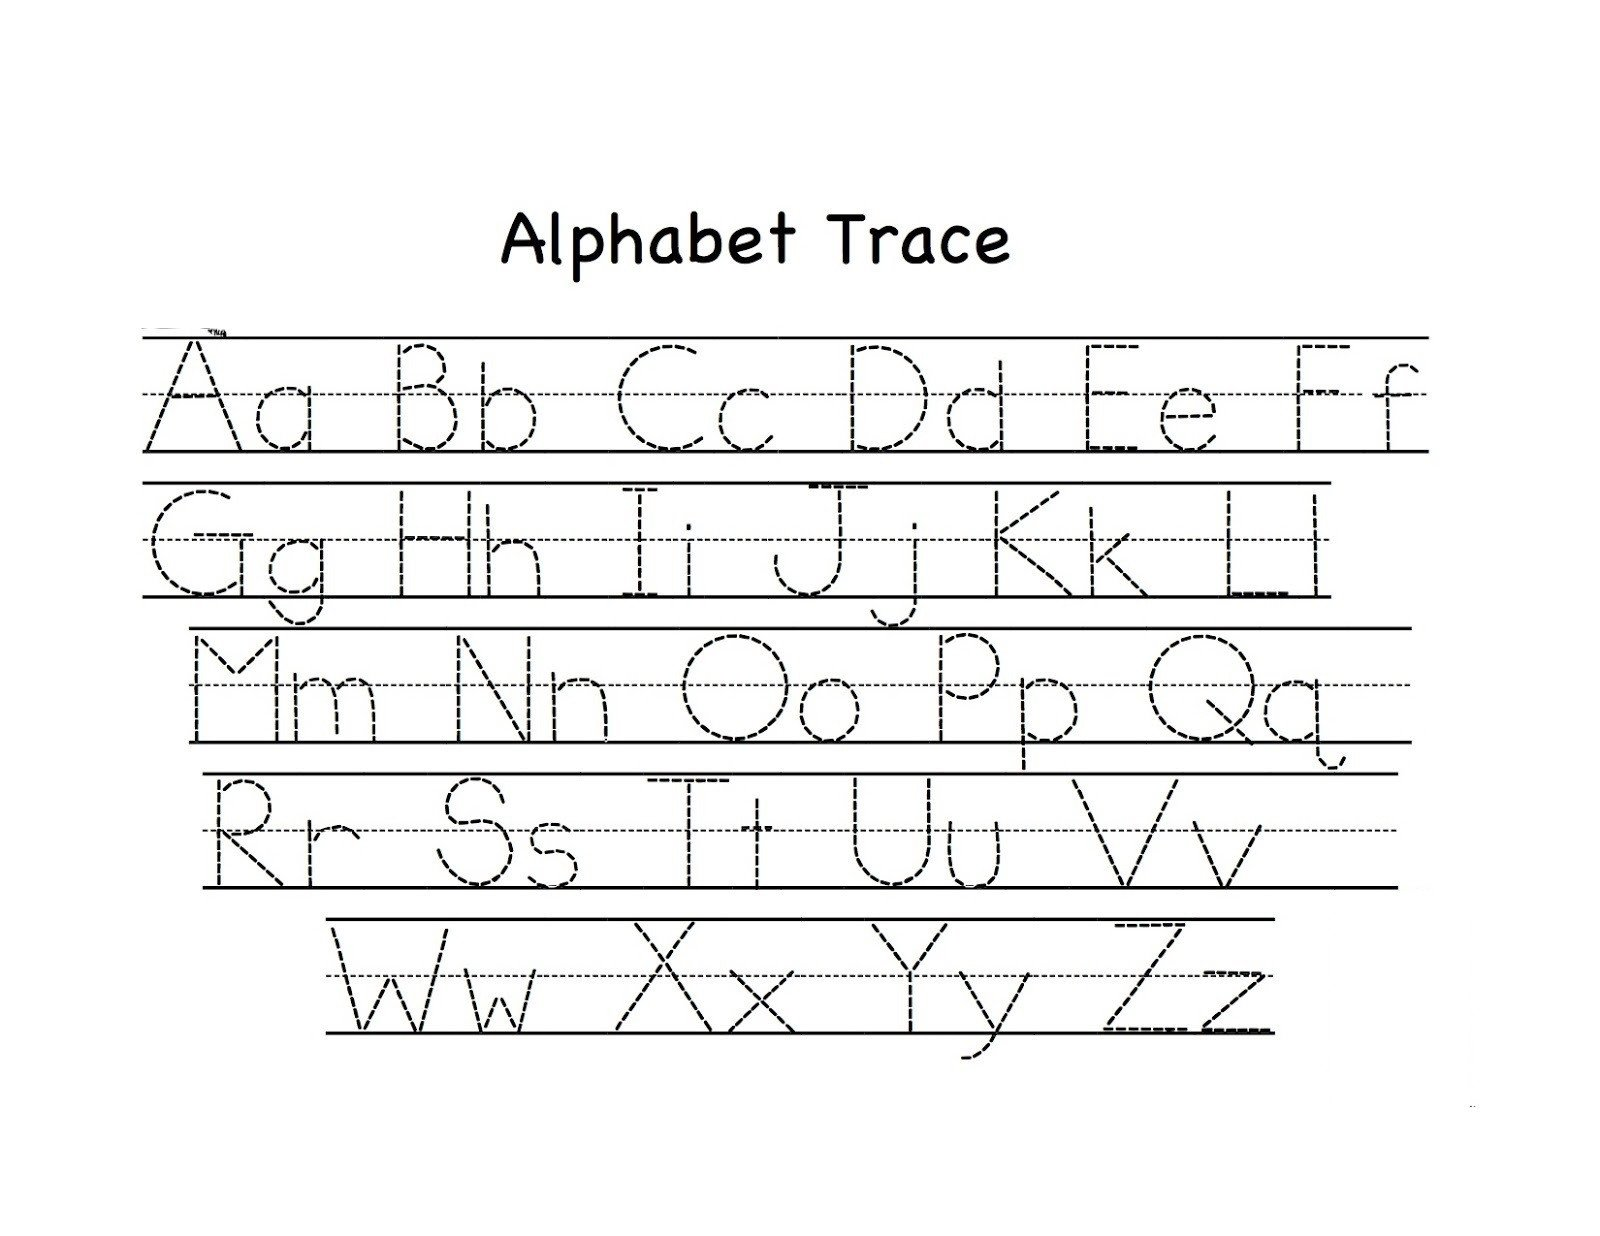 Tracing Letters Worksheet Az Math Worksheet Math Worksheet Preschool Alphabet Trace